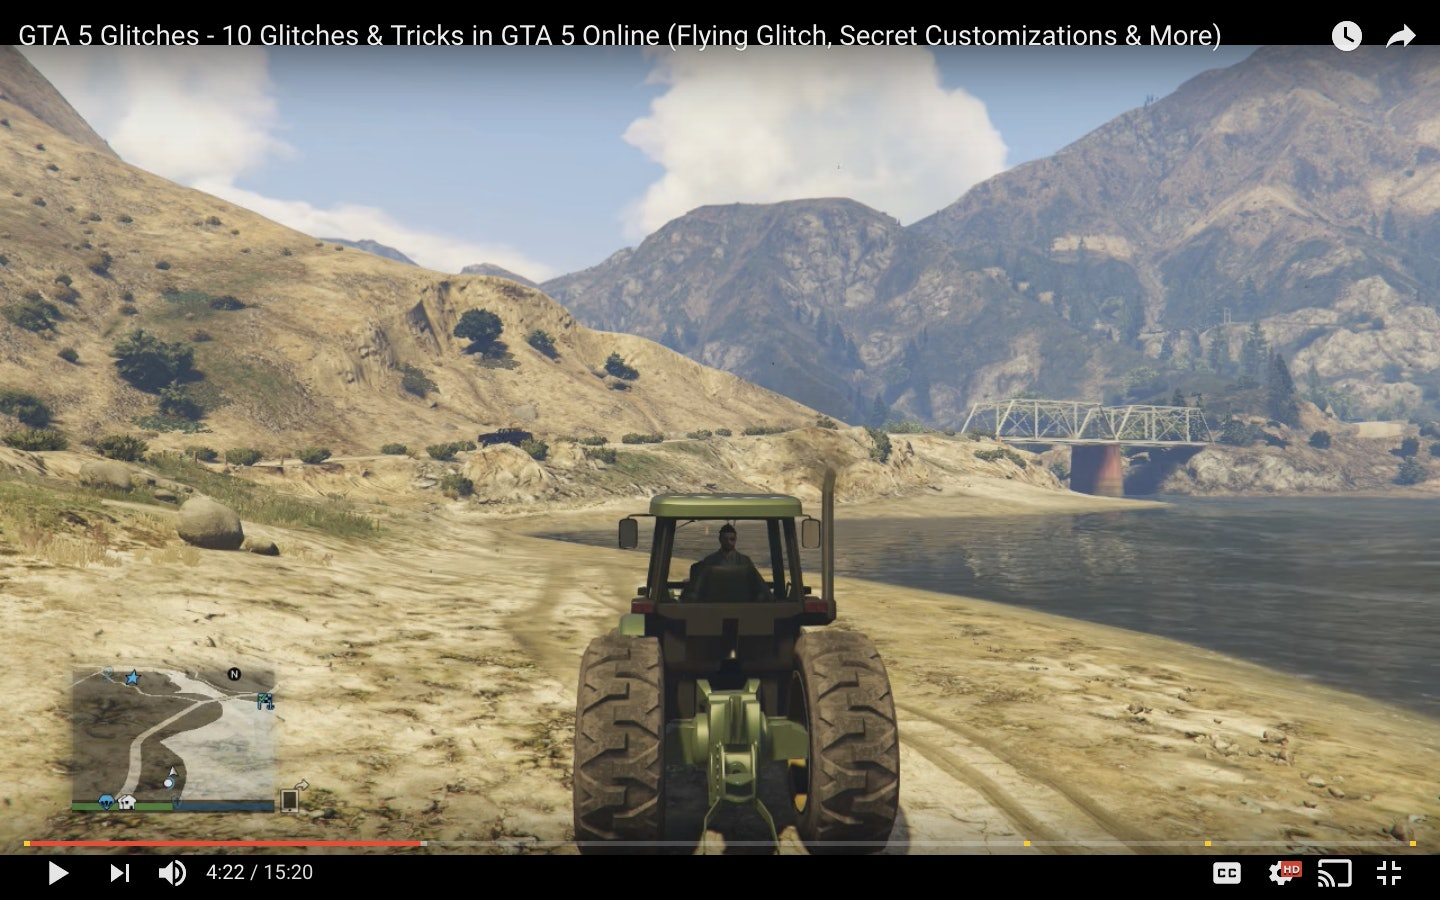 GTA 5 Online' Cheats, Hacks, Glitches and Exploits: How to